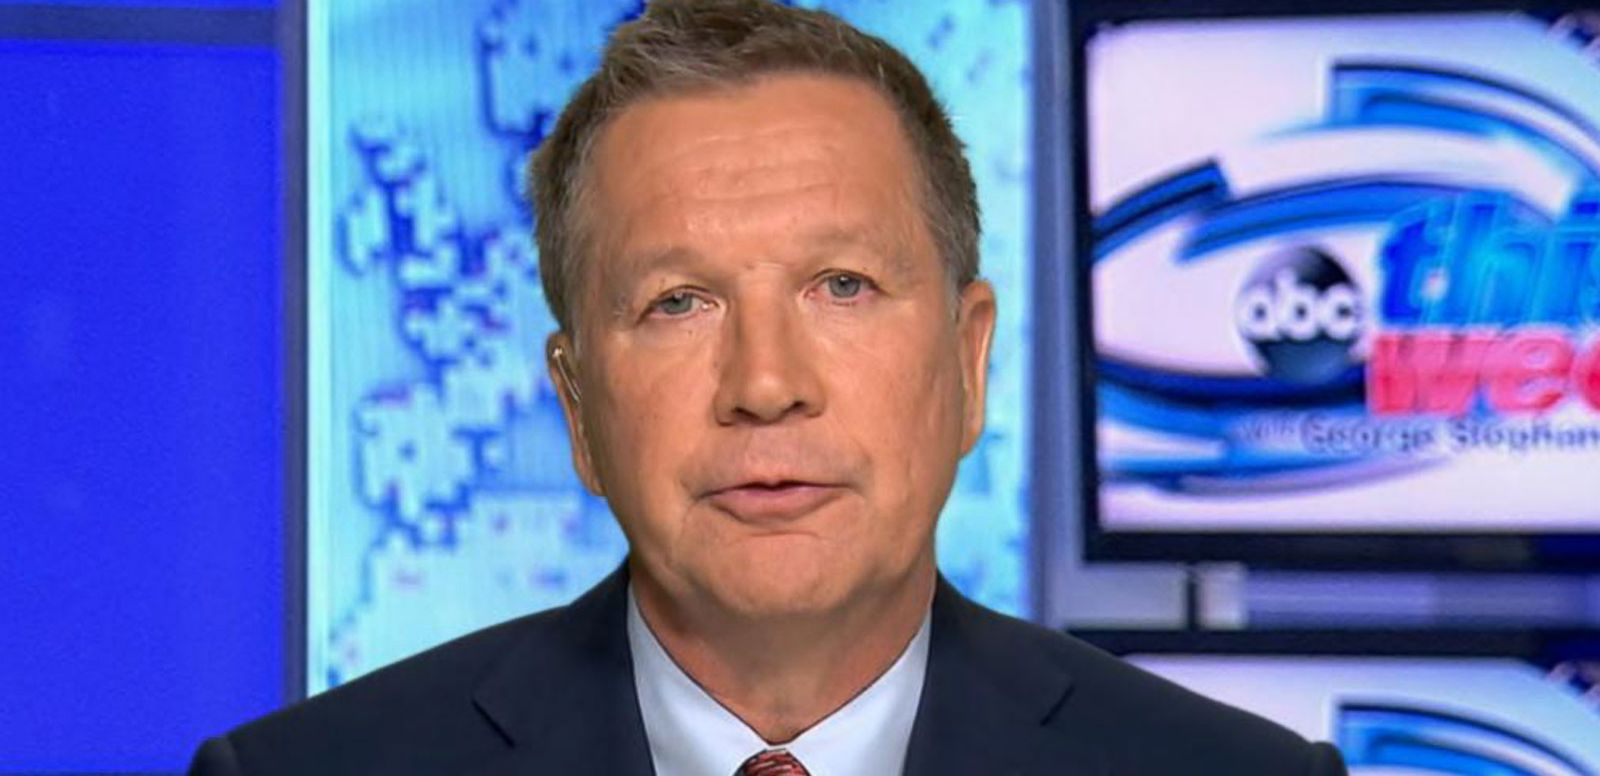 VIDEO: Gov. John Kasich on 2016 Presidential Race